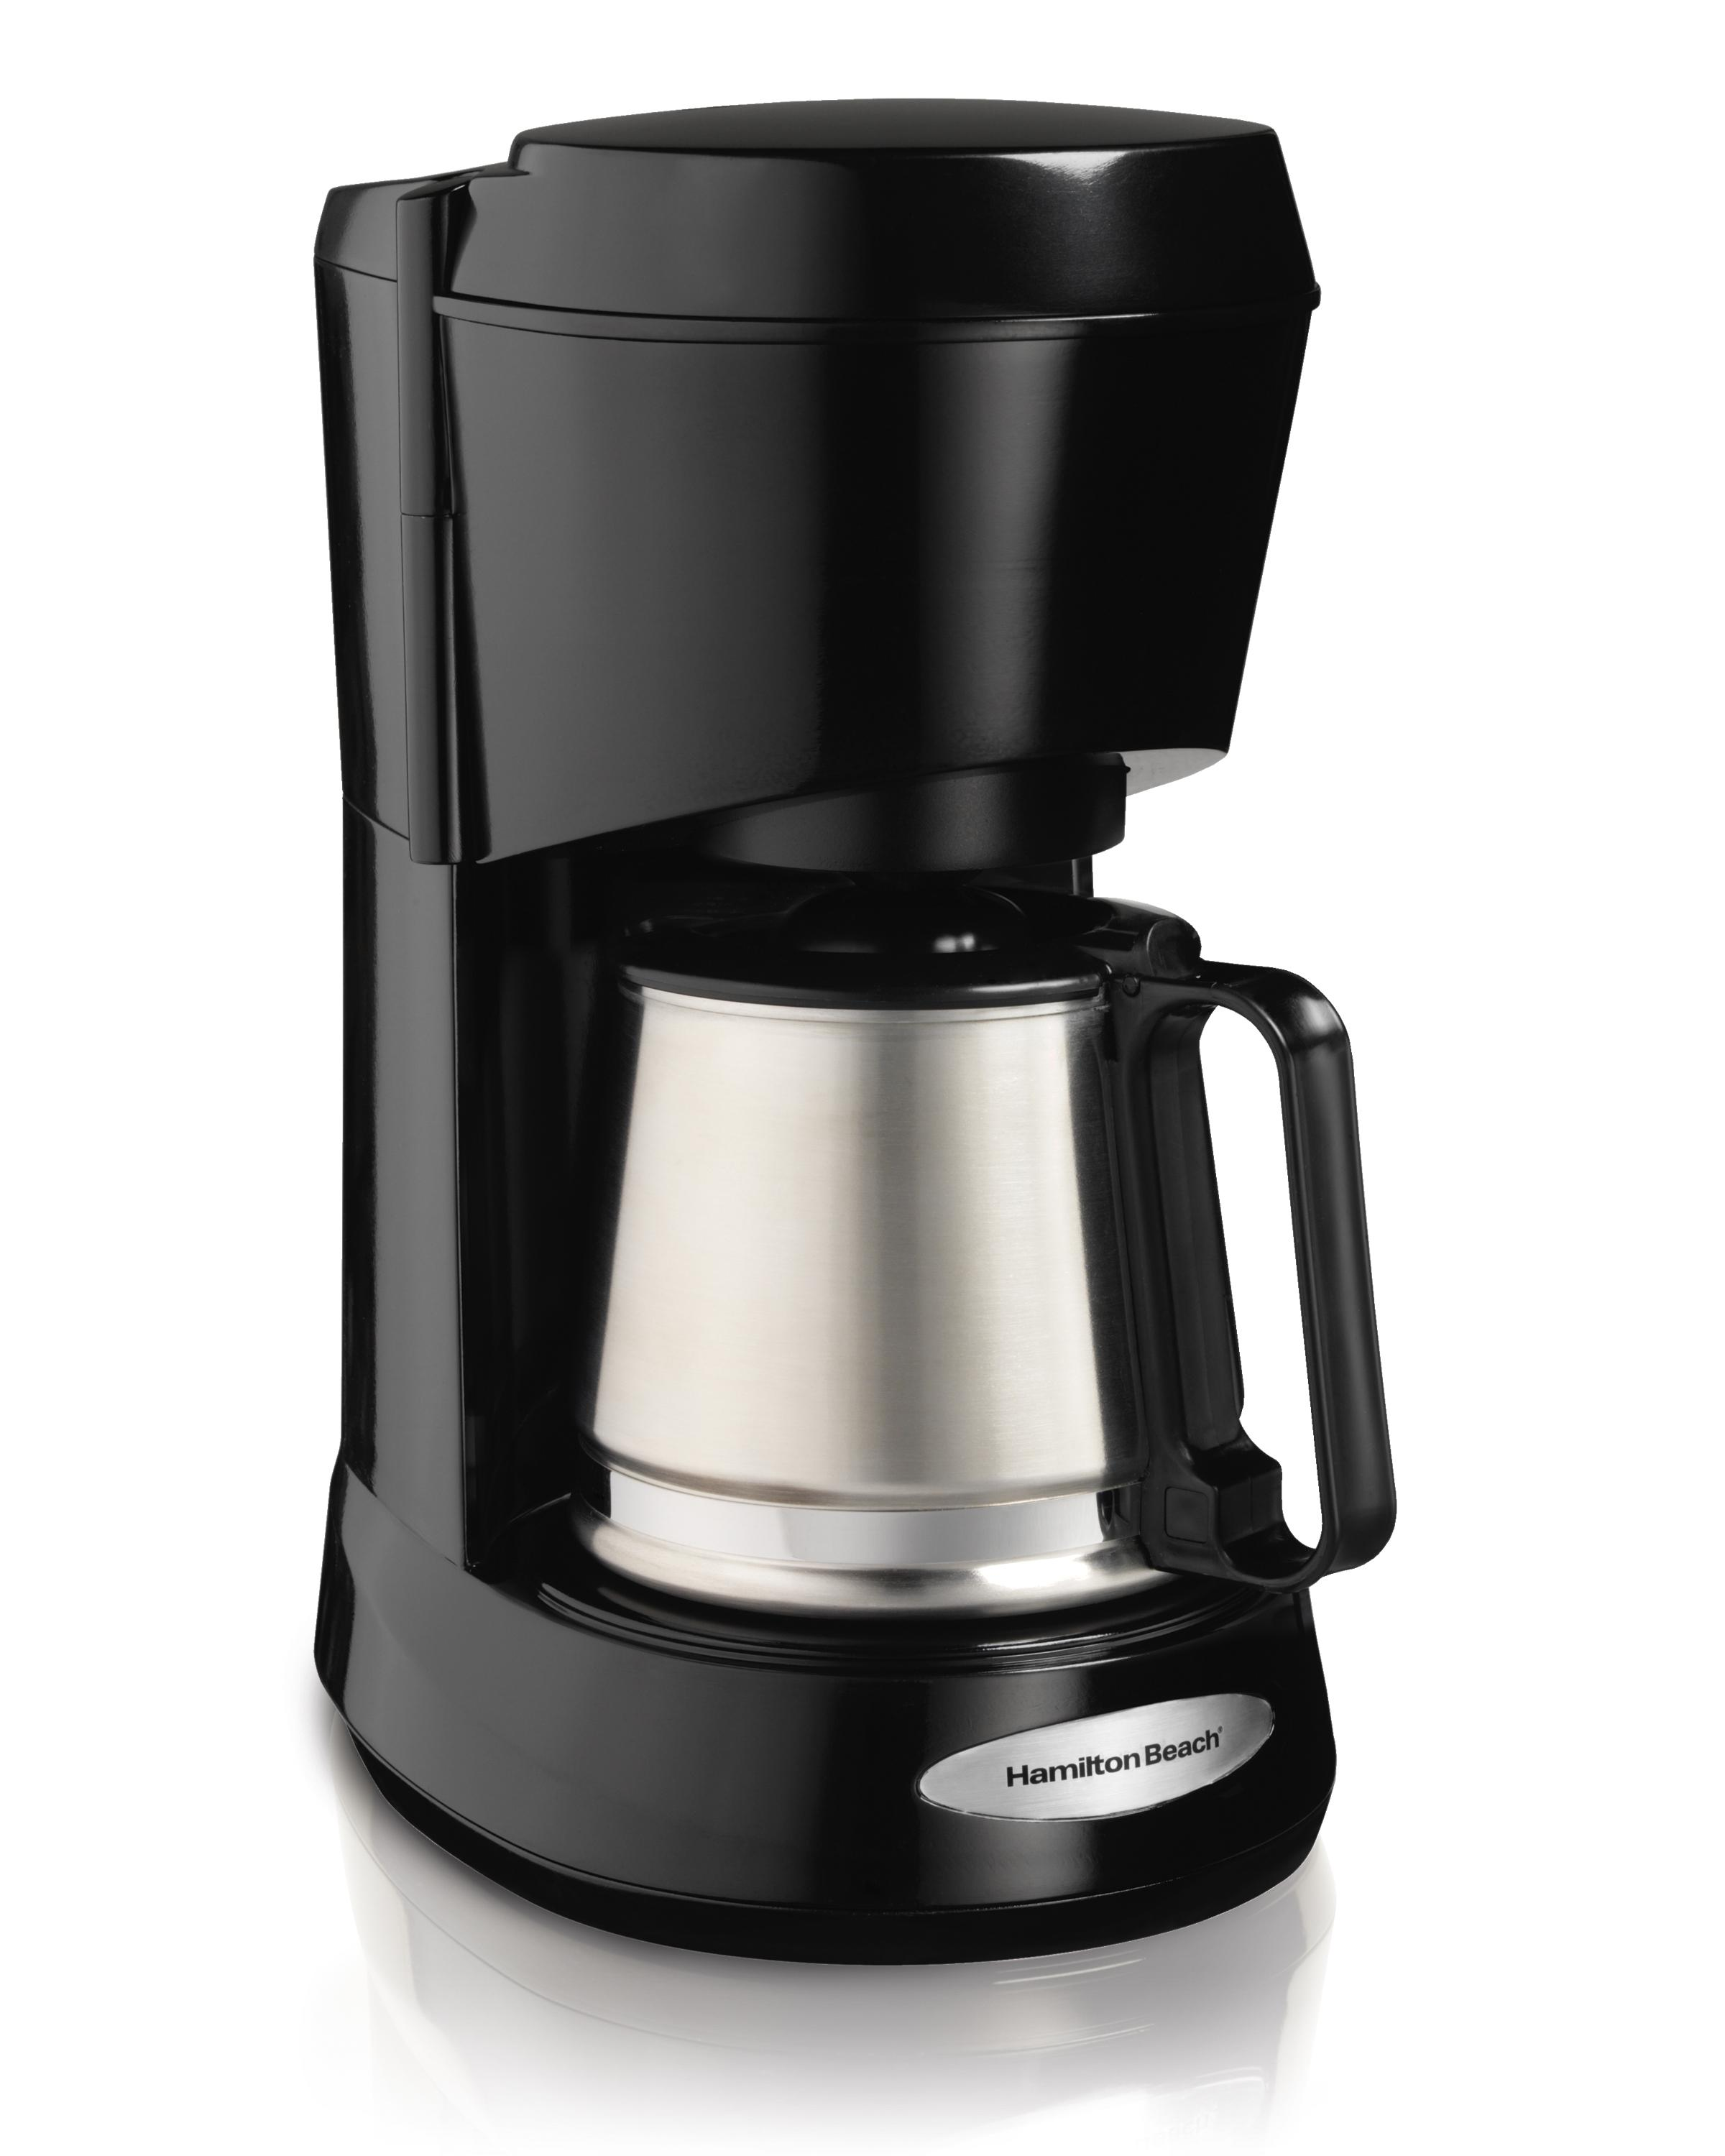 Coffee Maker Stainless Carafe : Amazon.com: Hamilton Beach 5-Cup Coffee Maker with Stainless Carafe (48137): Drip Coffeemakers ...